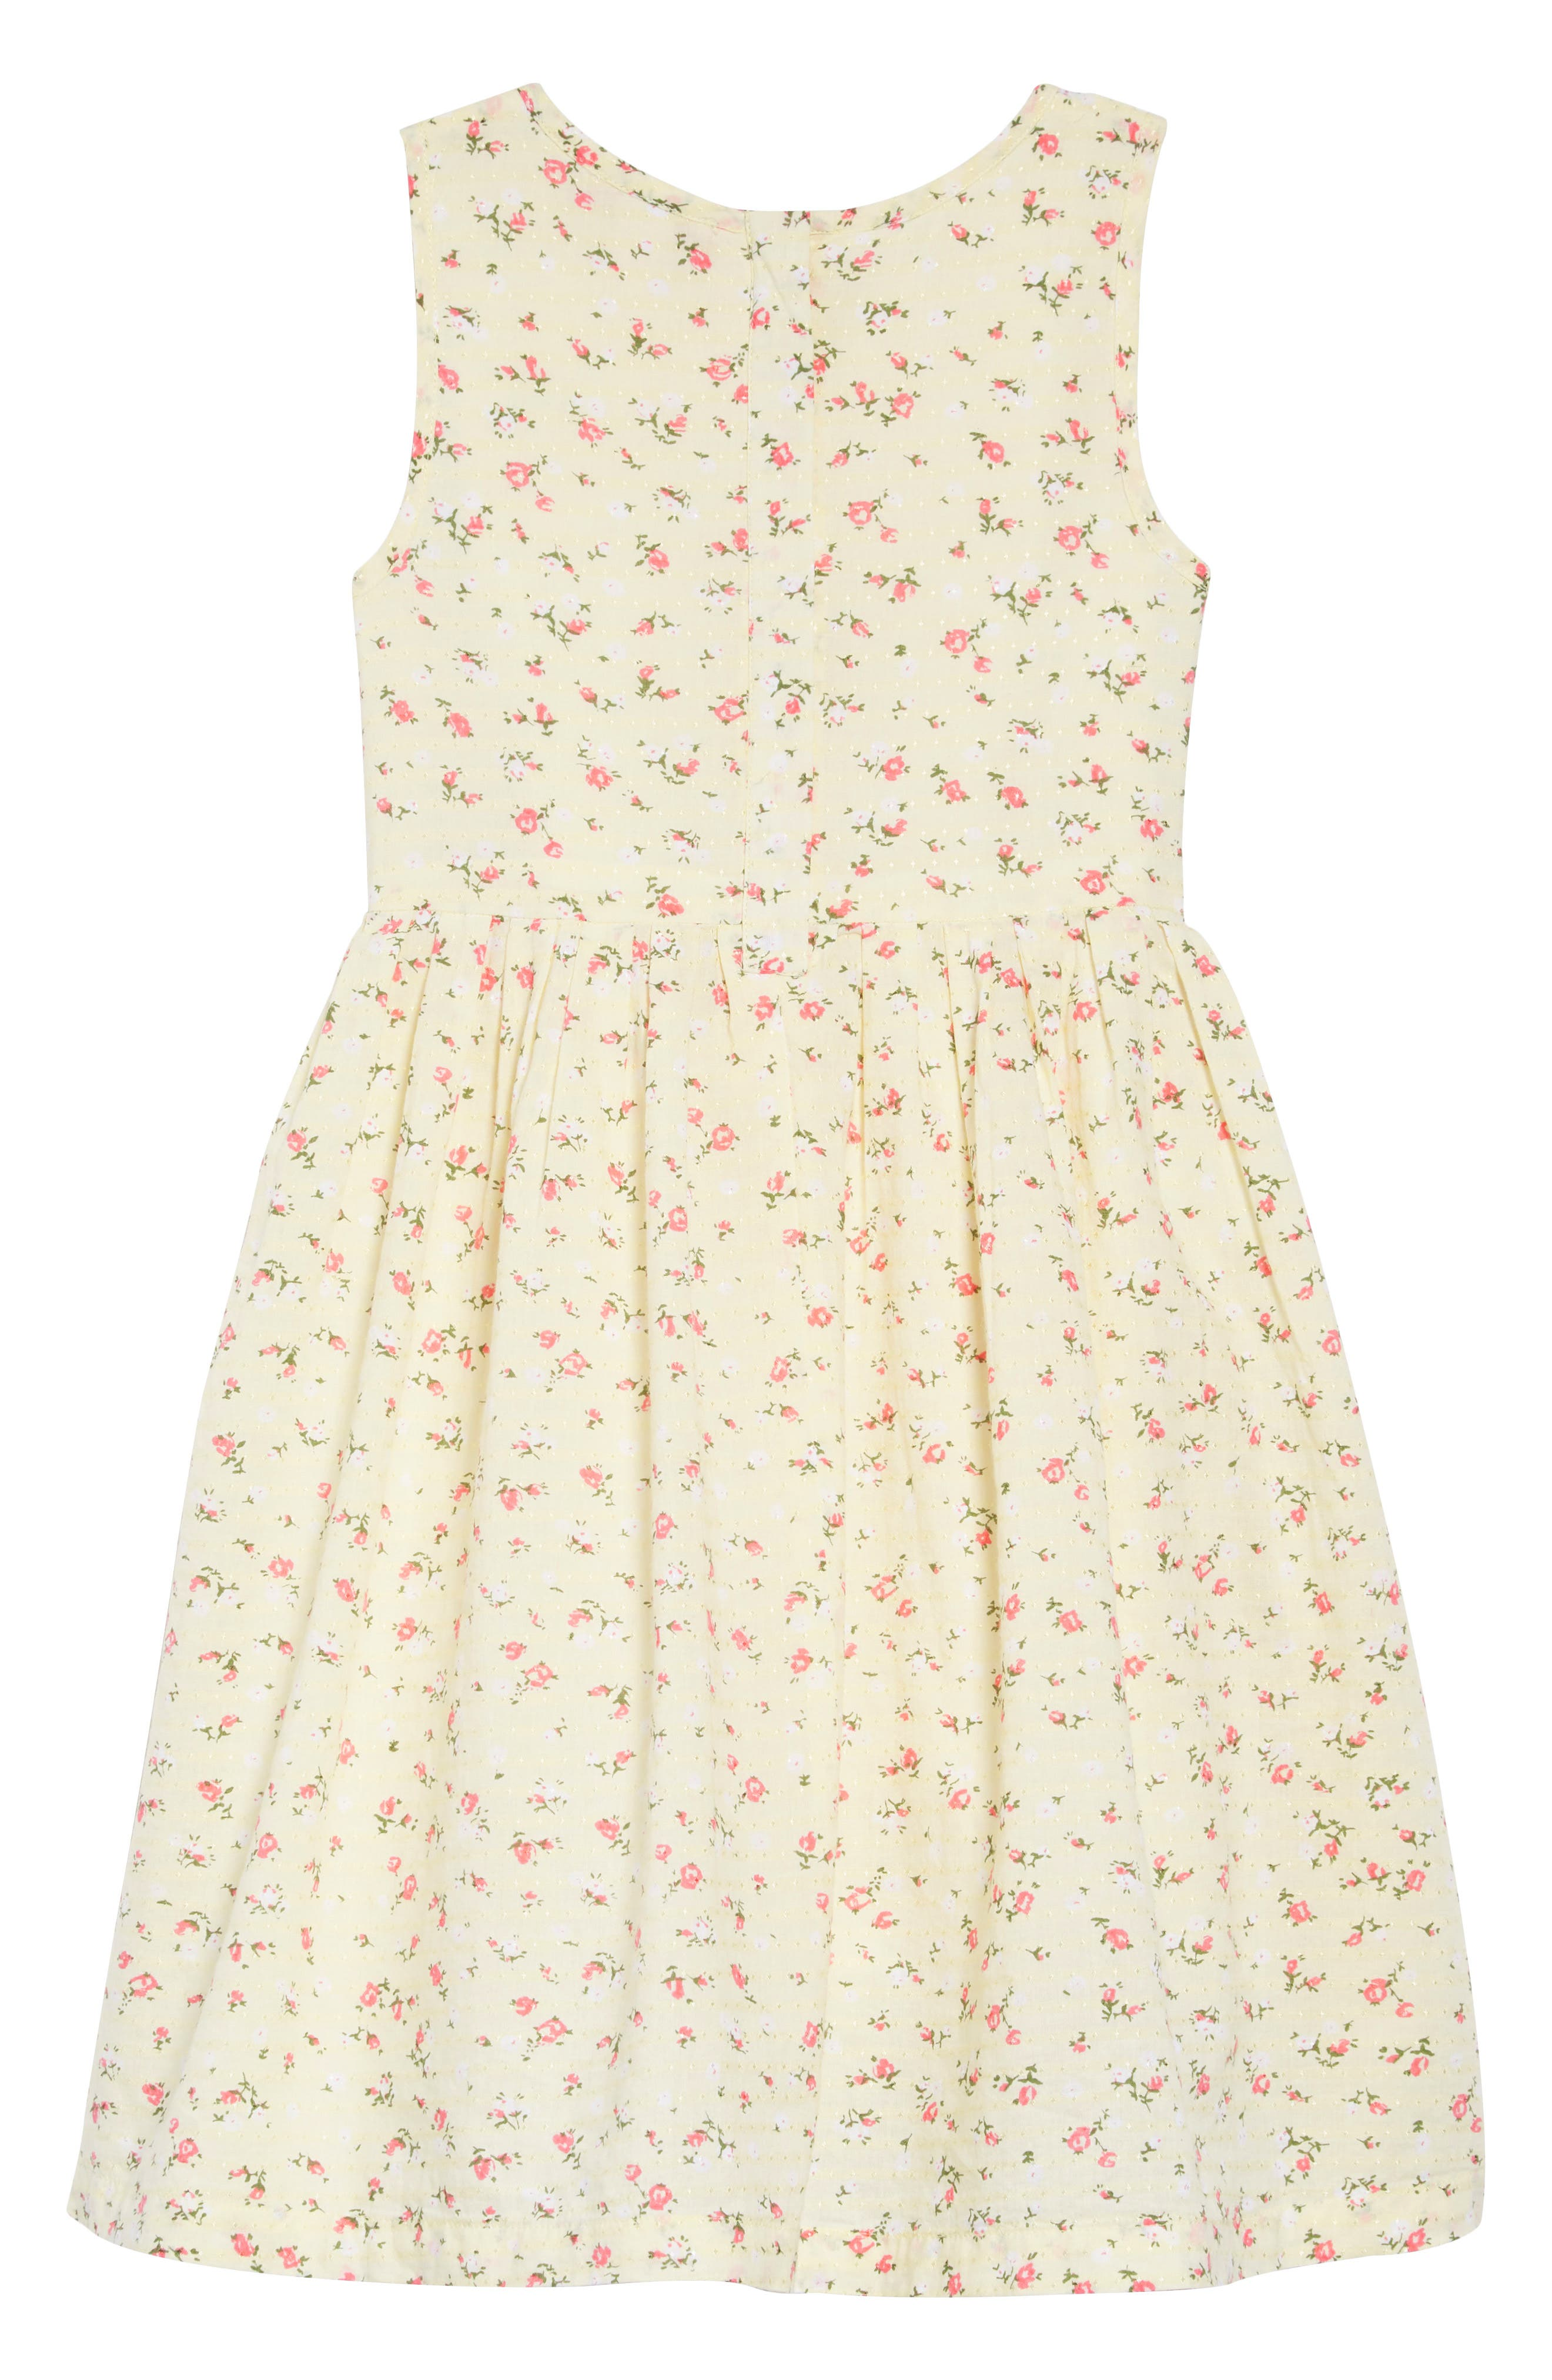 RUBY & BLOOM, Dobby Floral Pleat Dress, Alternate thumbnail 2, color, YELLOW SOFT SUNSHINE DITSY